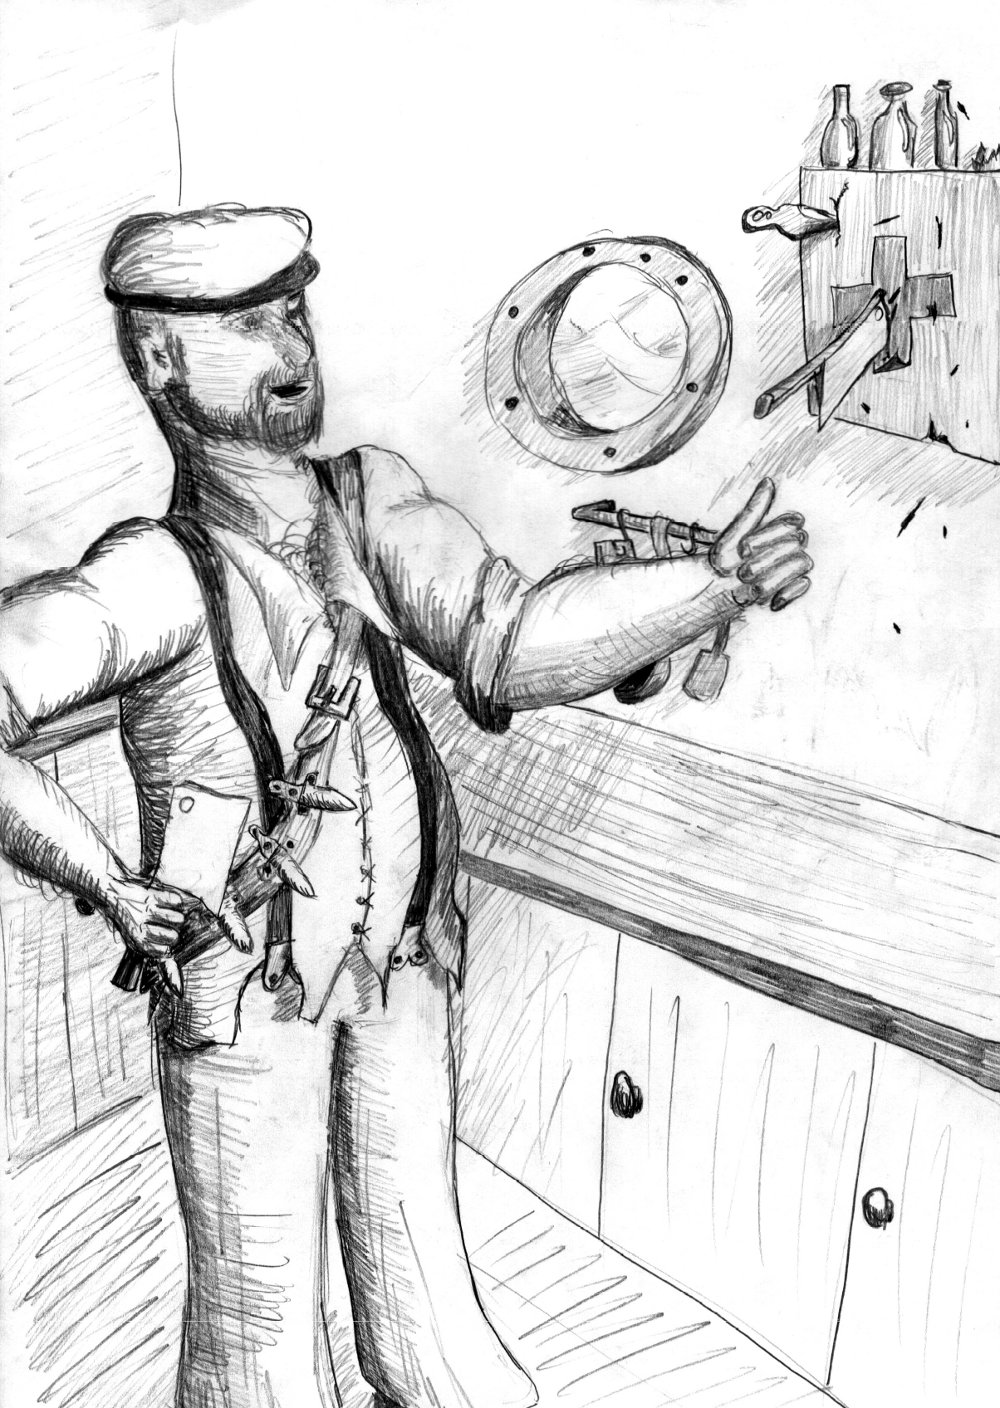 Shipscook for the short scenario Pirates of the Nexus e.V.